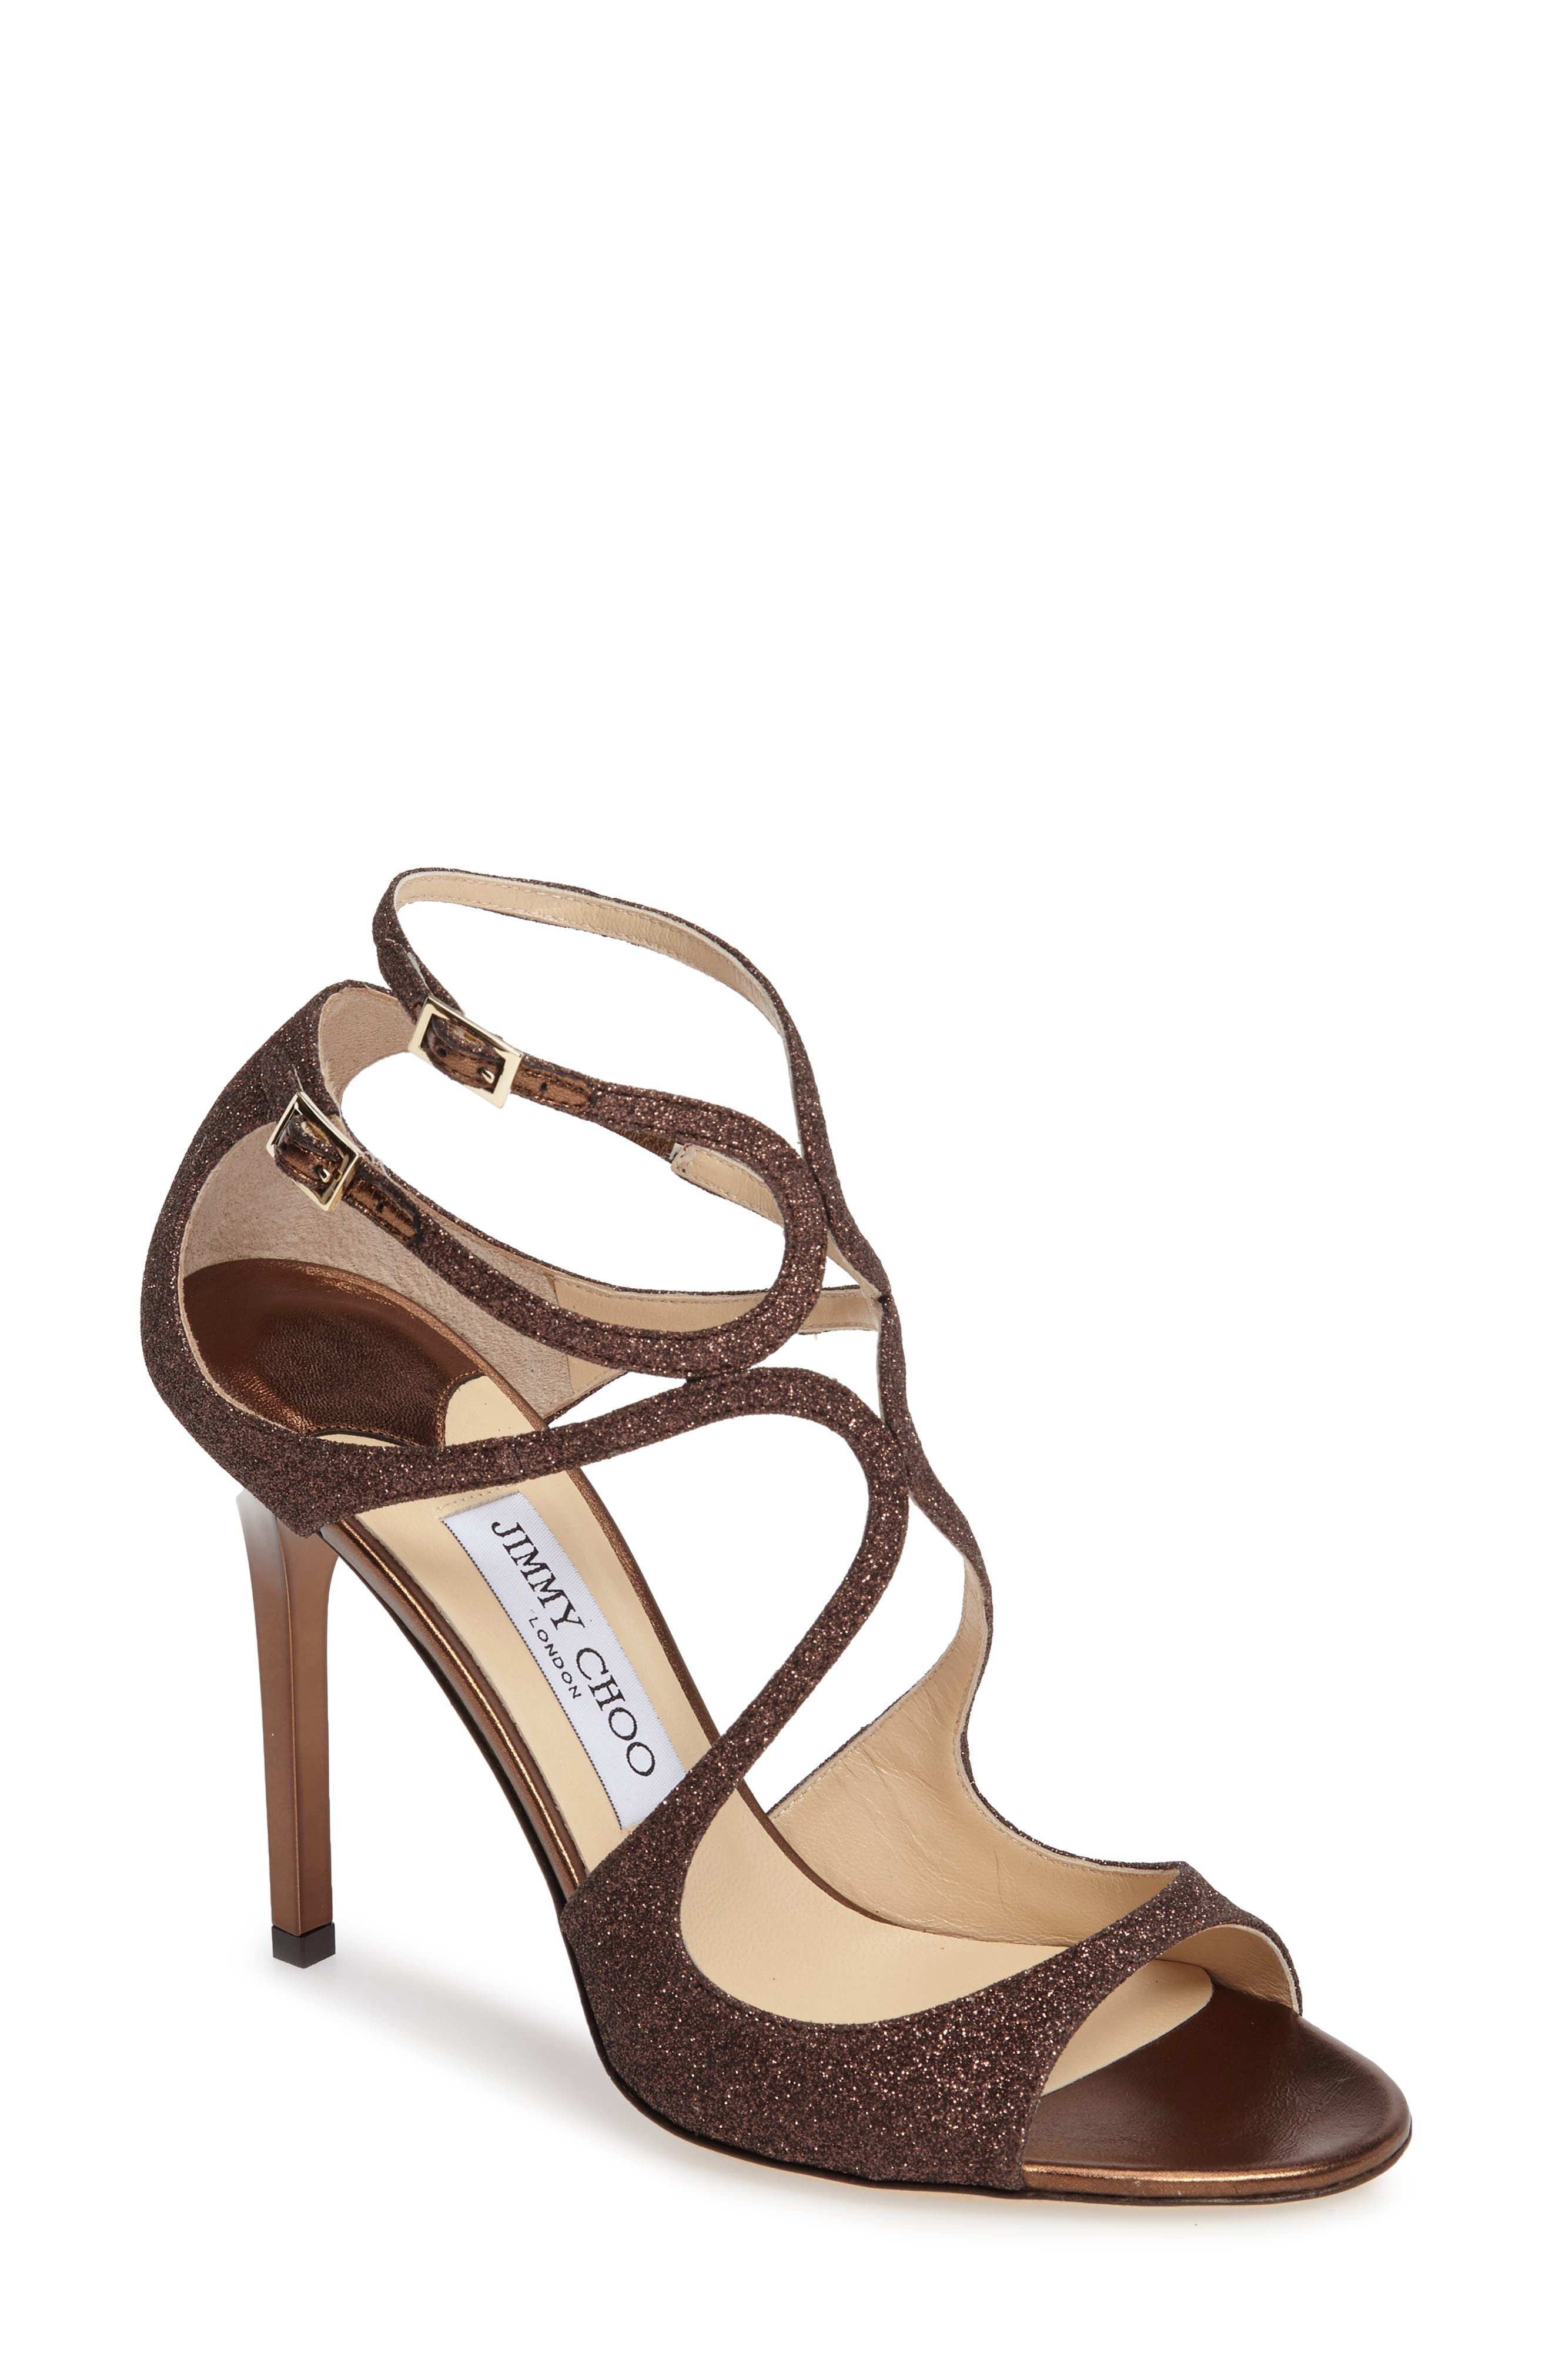 Alternate Image 1 Selected - Jimmy Choo Lang Sandal (Women)